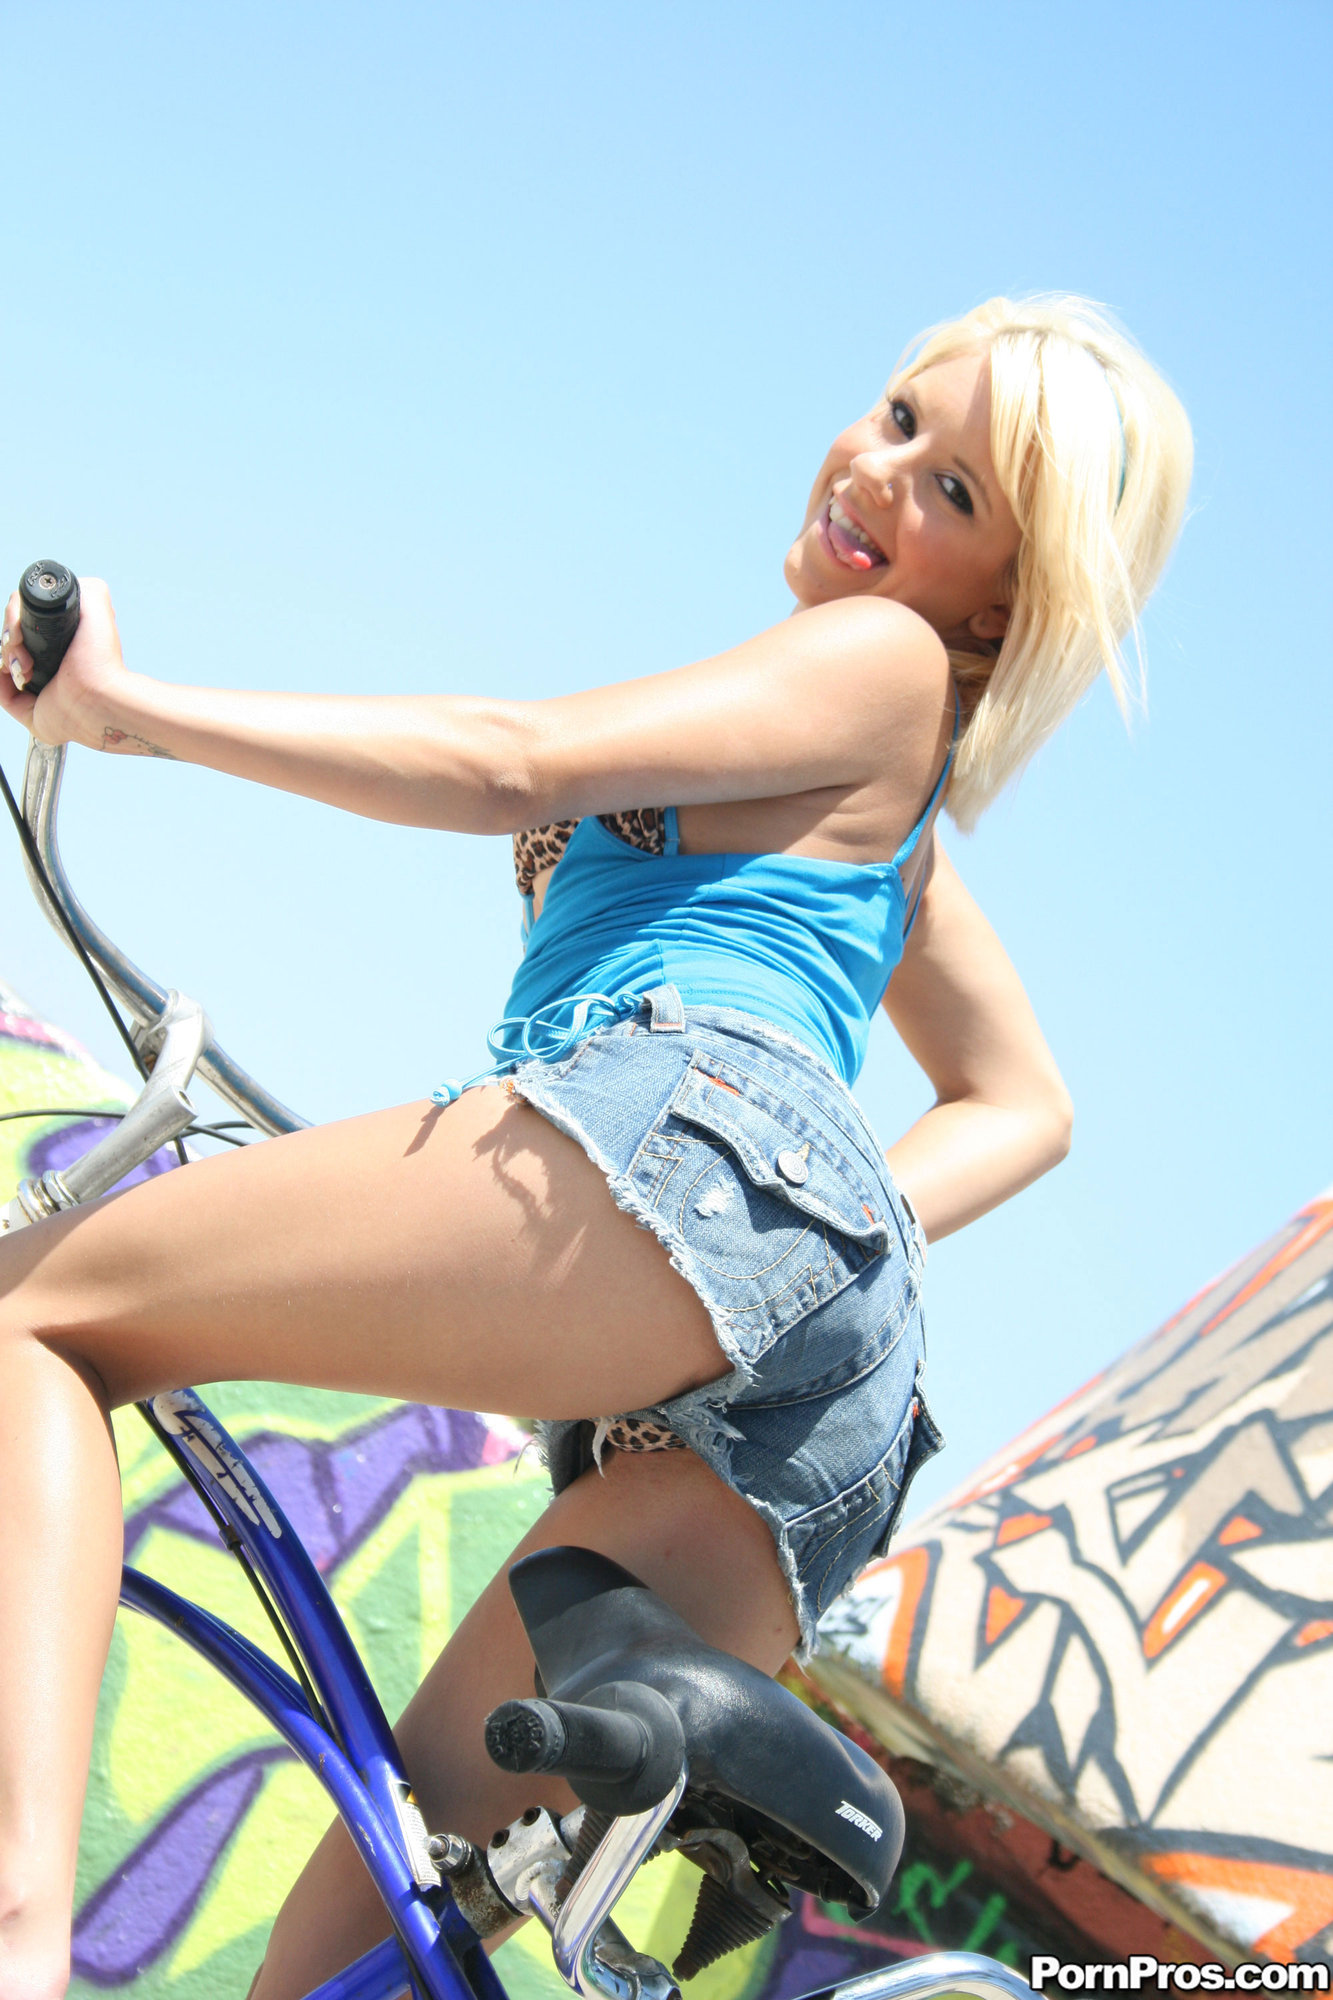 riding bike Teen